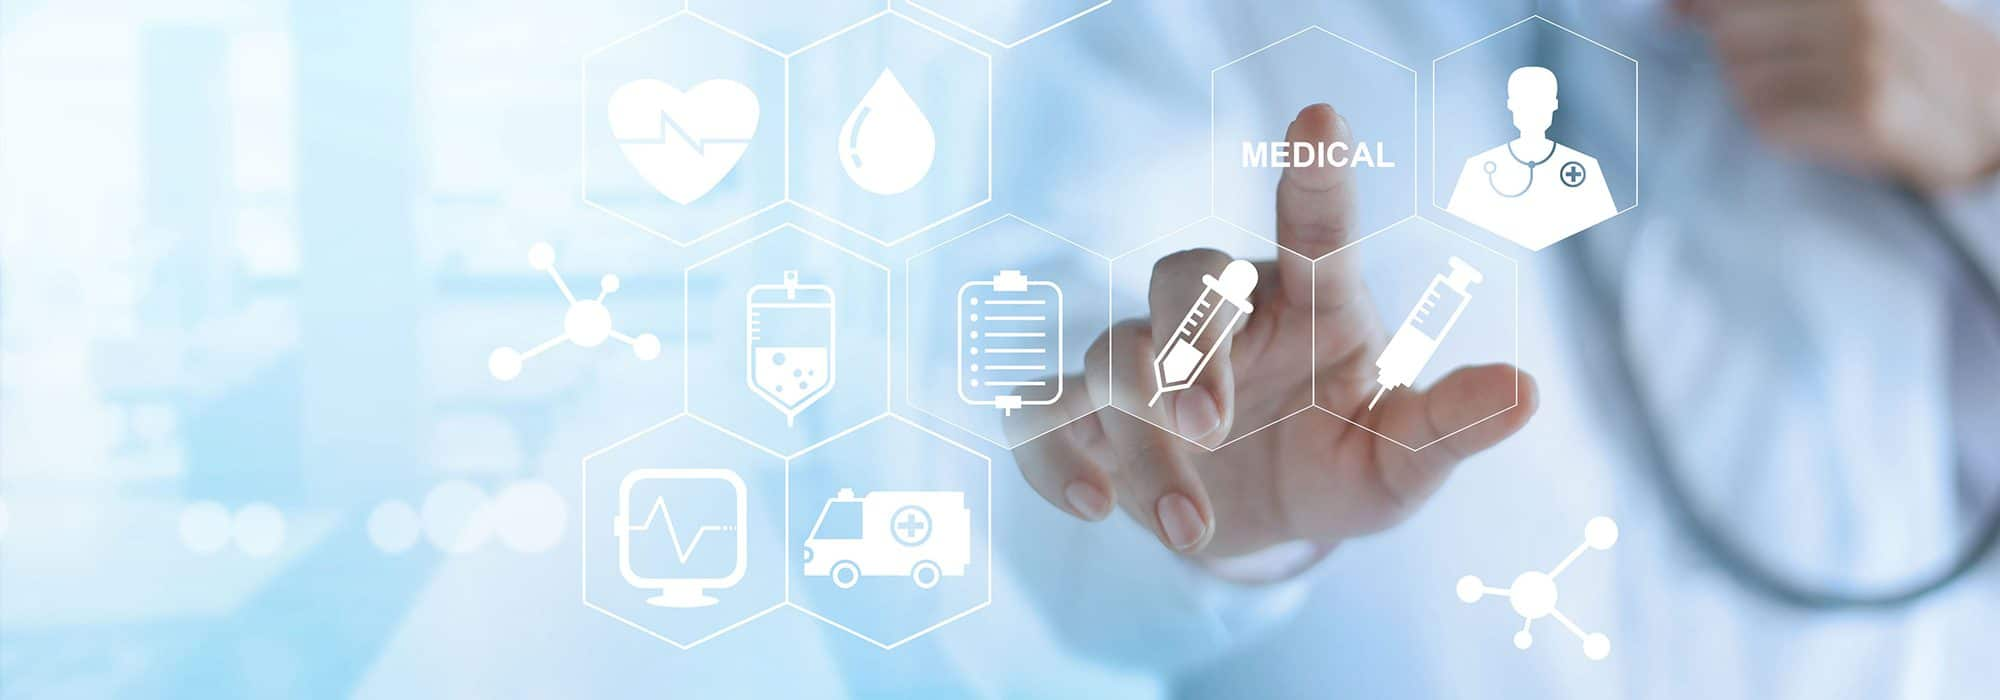 Injection & plastics transformation for the medical field